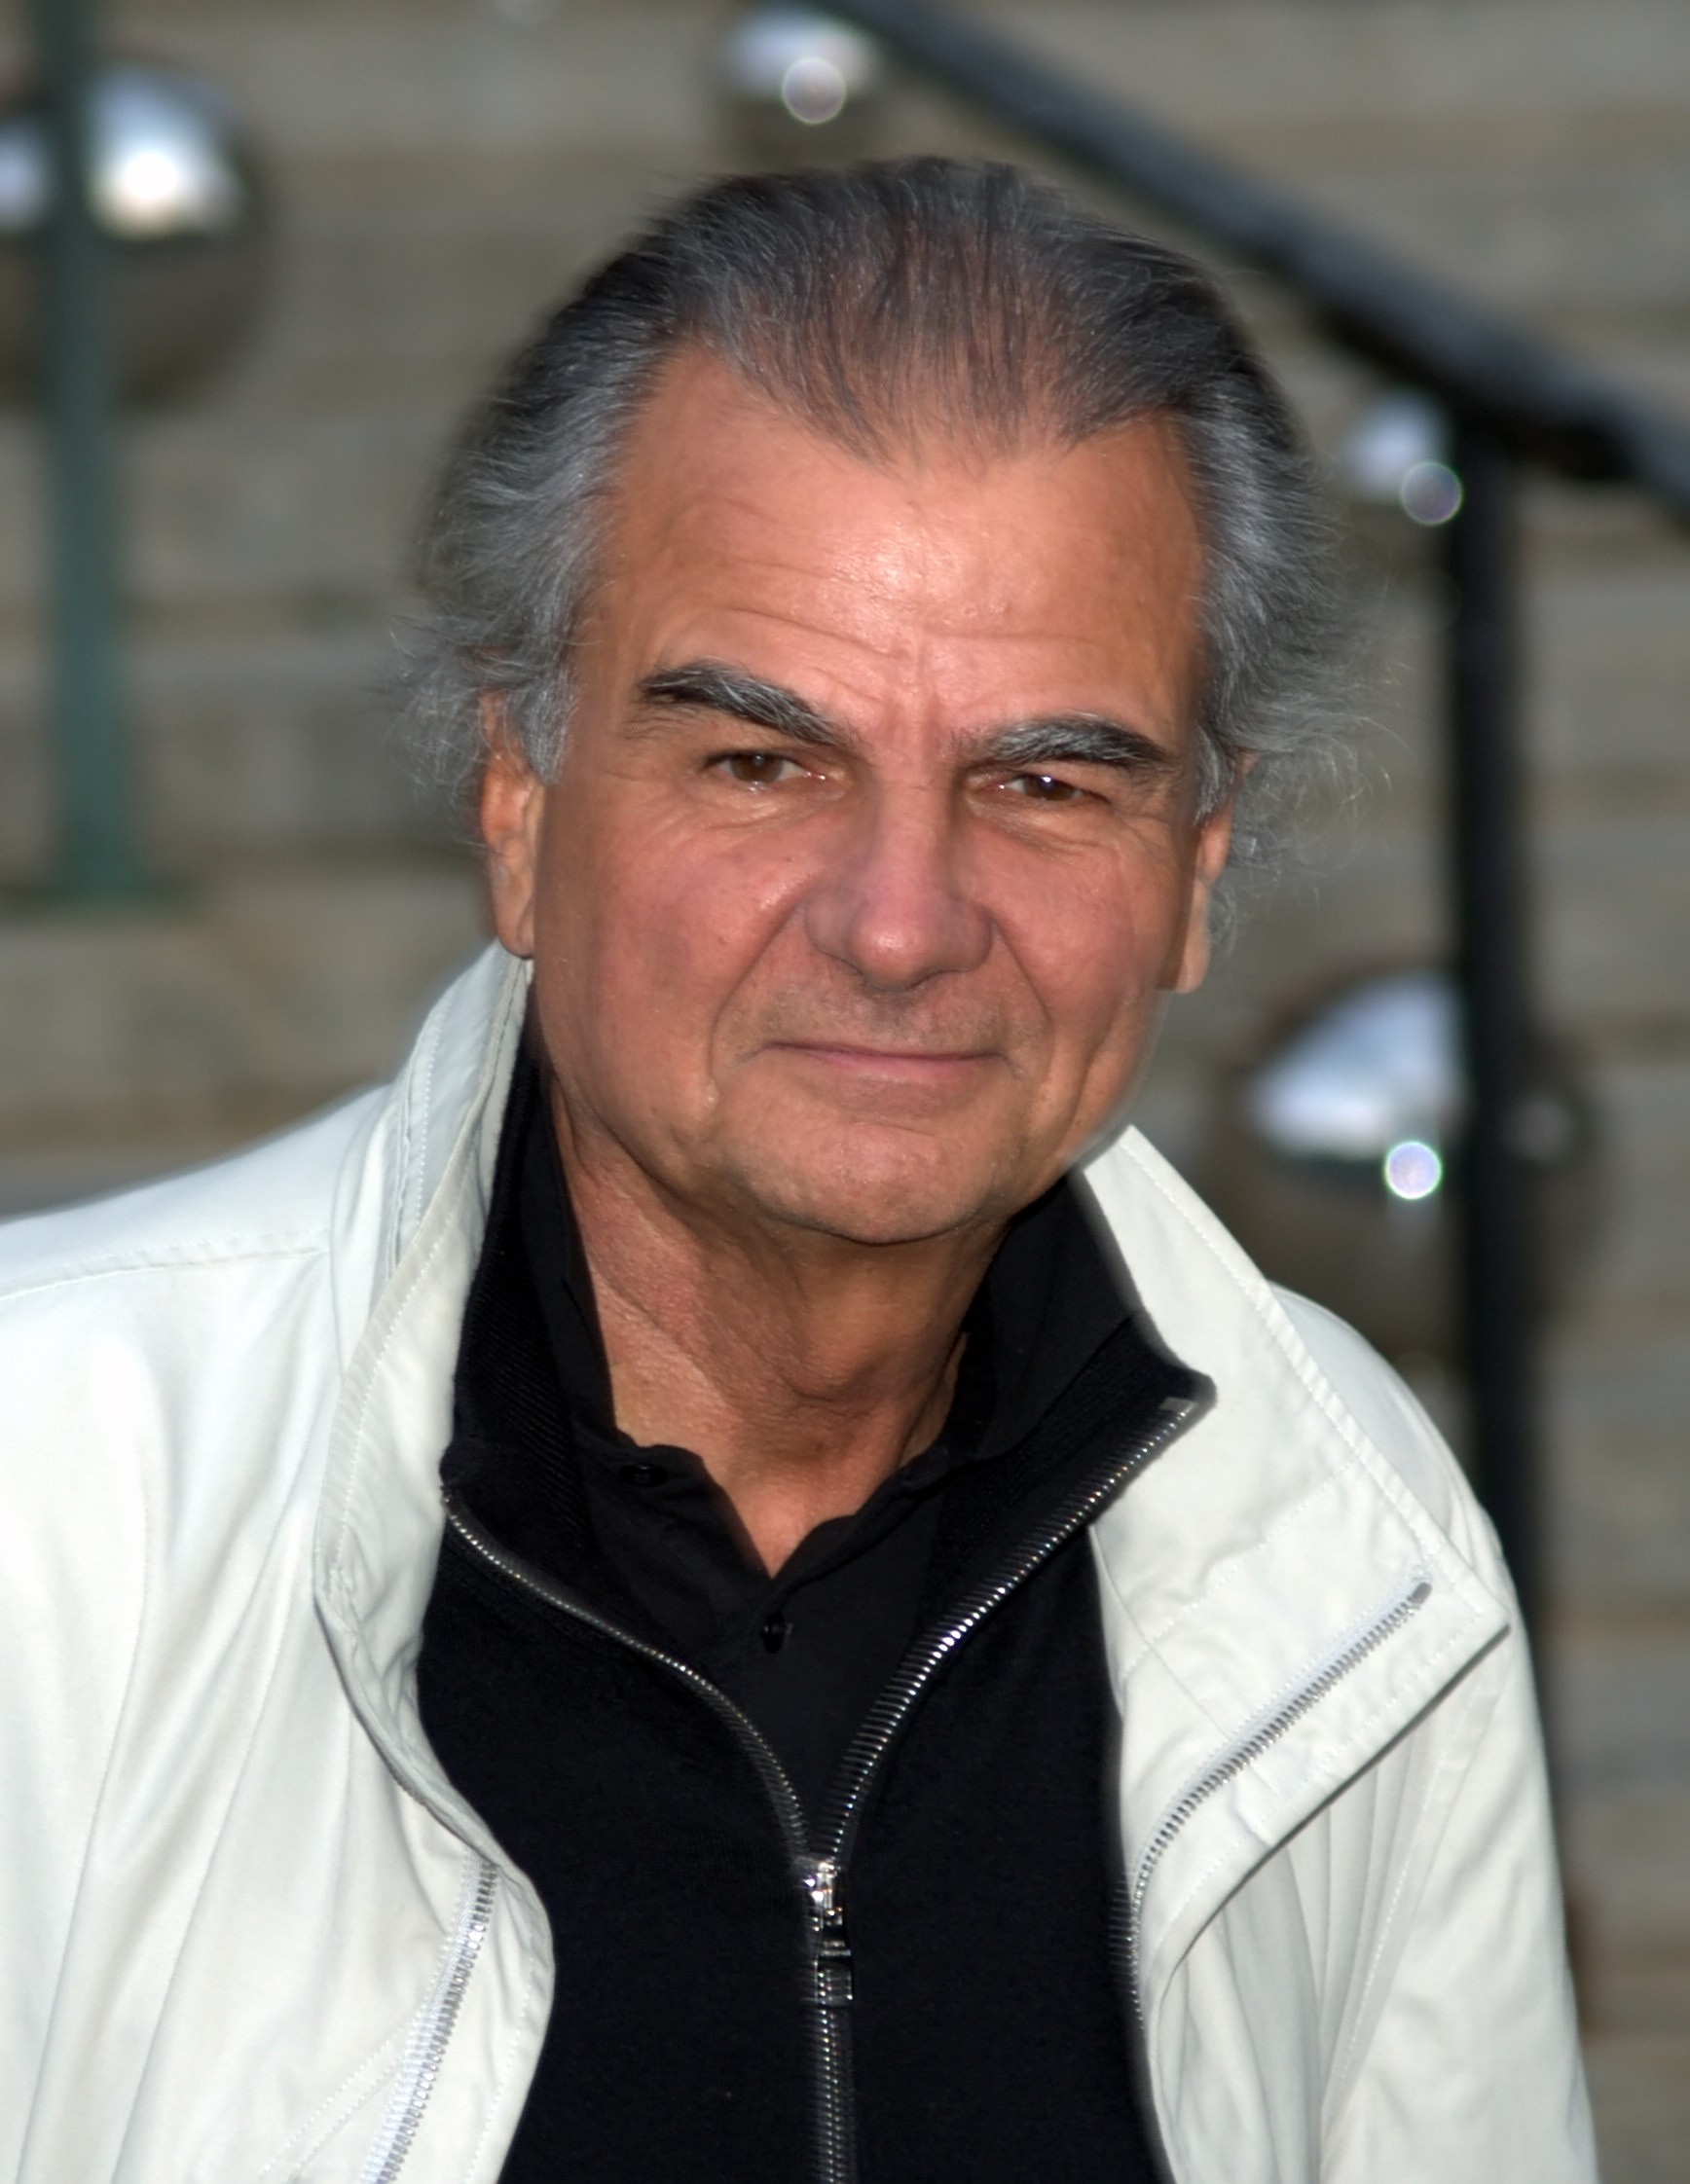 Image of Patrick Demarchelier from Wikidata